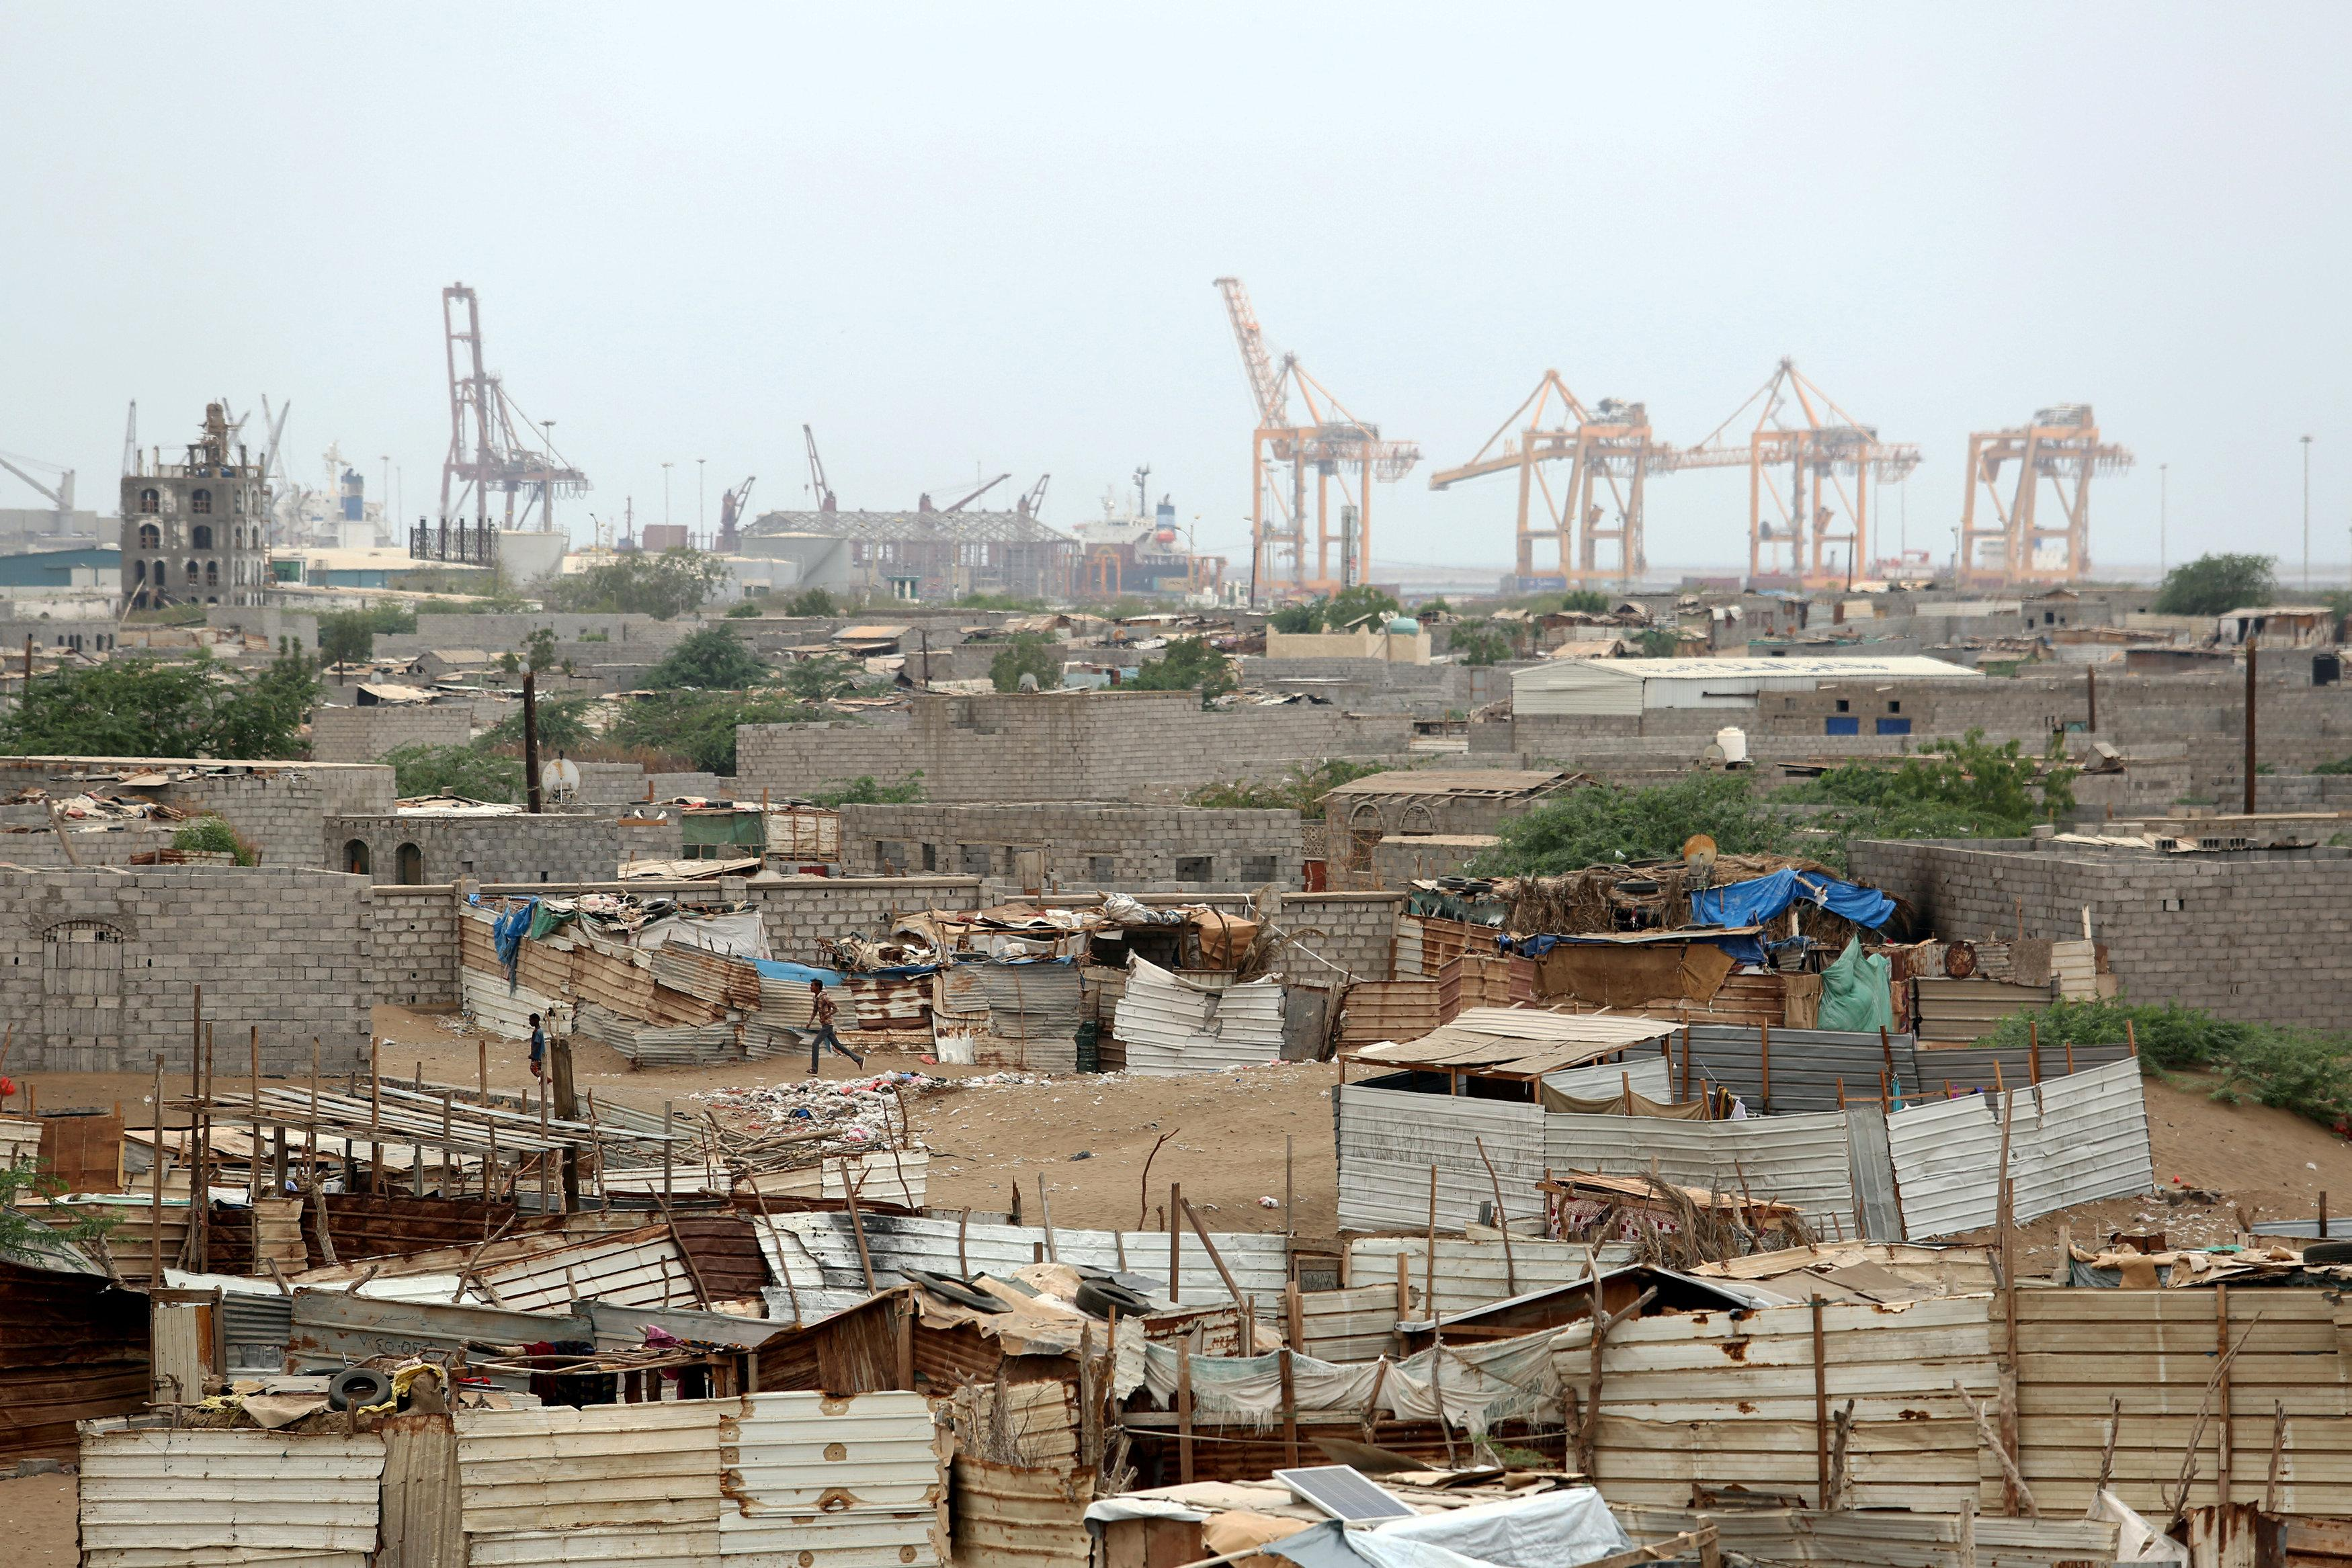 Hodeidah port's cranes are pictured from a nearby shantytown in Hodeidah, Yemen June 16, 2018. Abduljabbar Zeyad